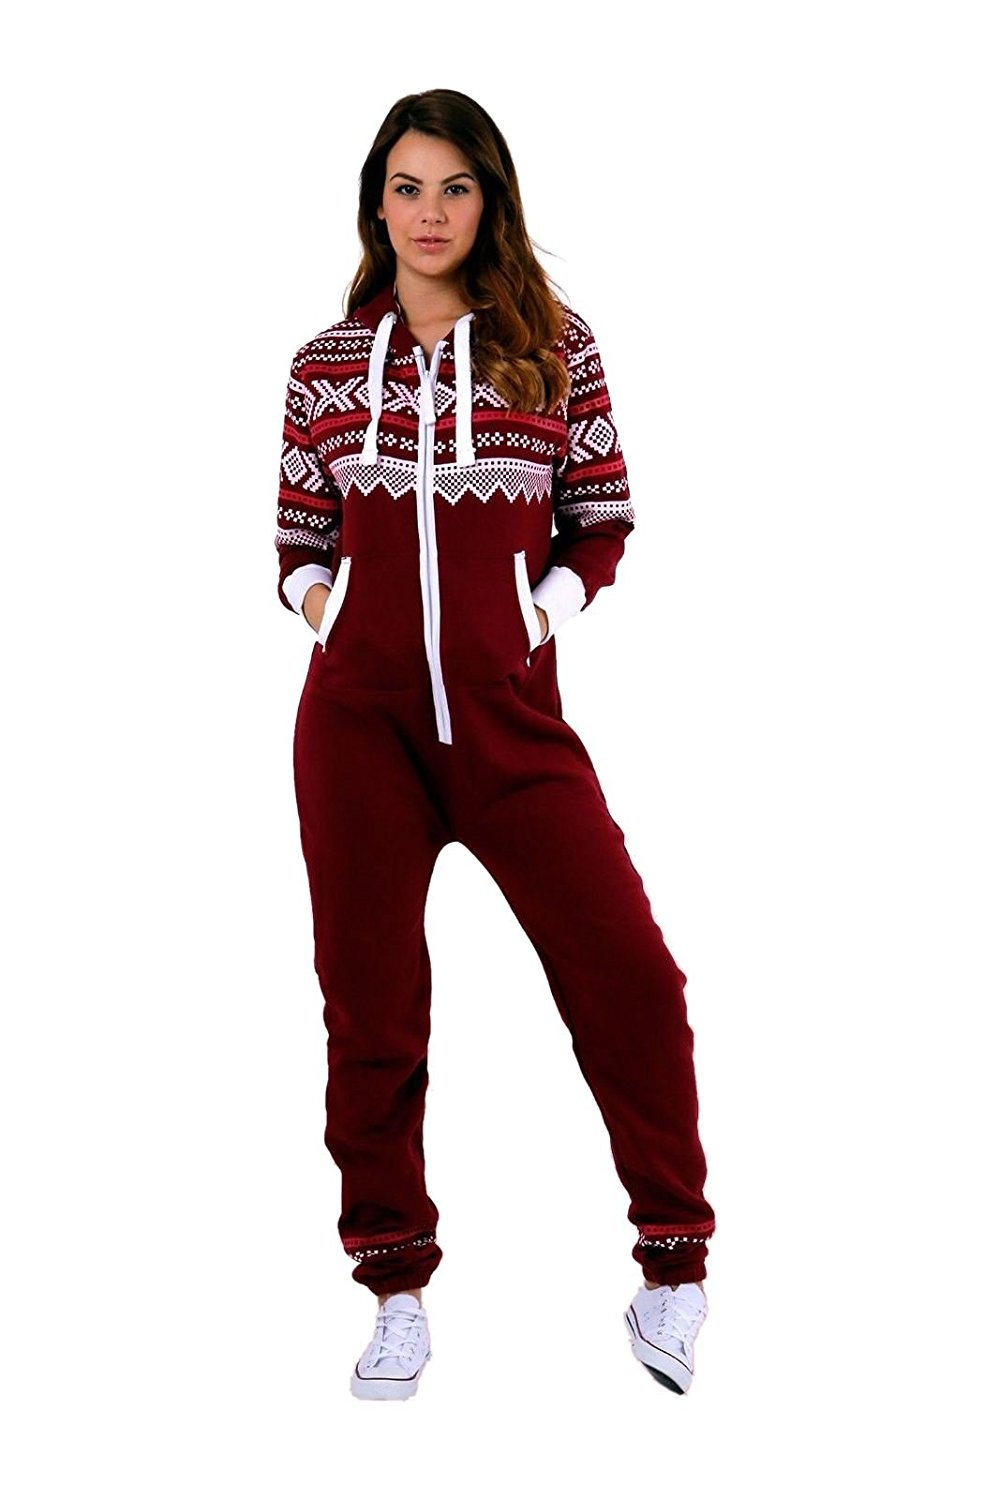 b53248b8f1 Get Quotations · Janisramone New Womens Aztec Print Hooded Fleece All In  One Jumpsuit Zip Up Onesie Playsuit